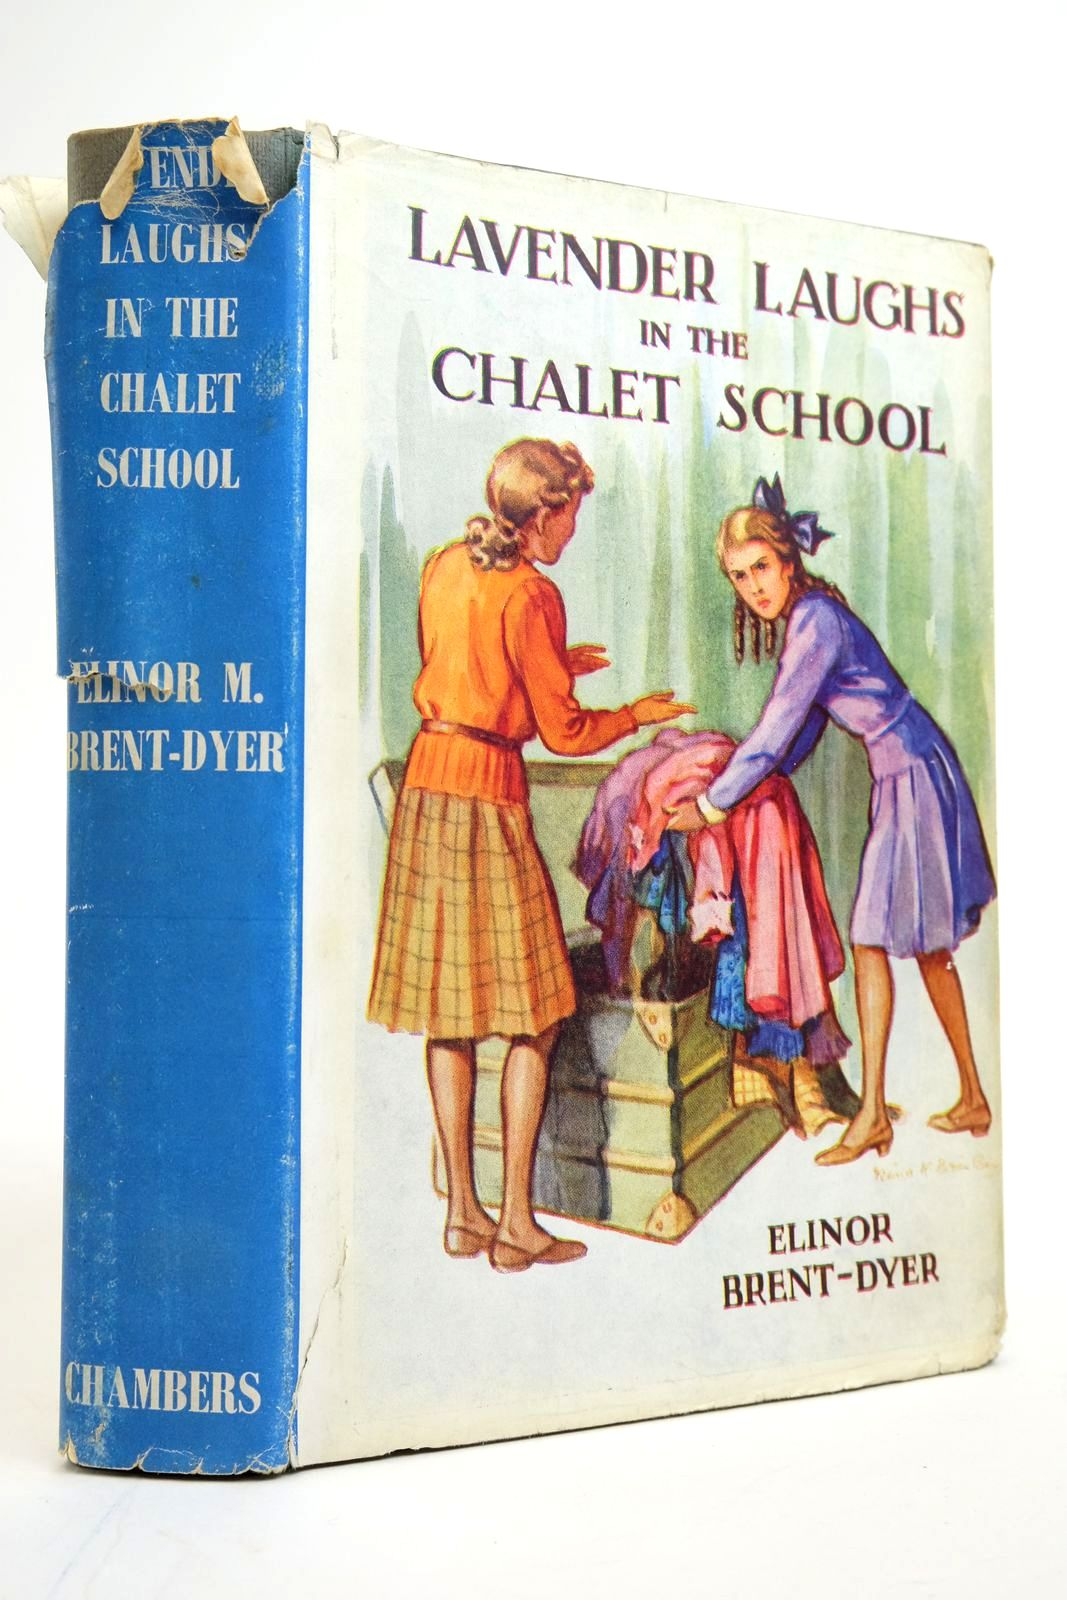 Photo of LAVENDER LAUGHS IN THE CHALET SCHOOL written by Brent-Dyer, Elinor M. published by W. & R. Chambers Limited (STOCK CODE: 2135234)  for sale by Stella & Rose's Books